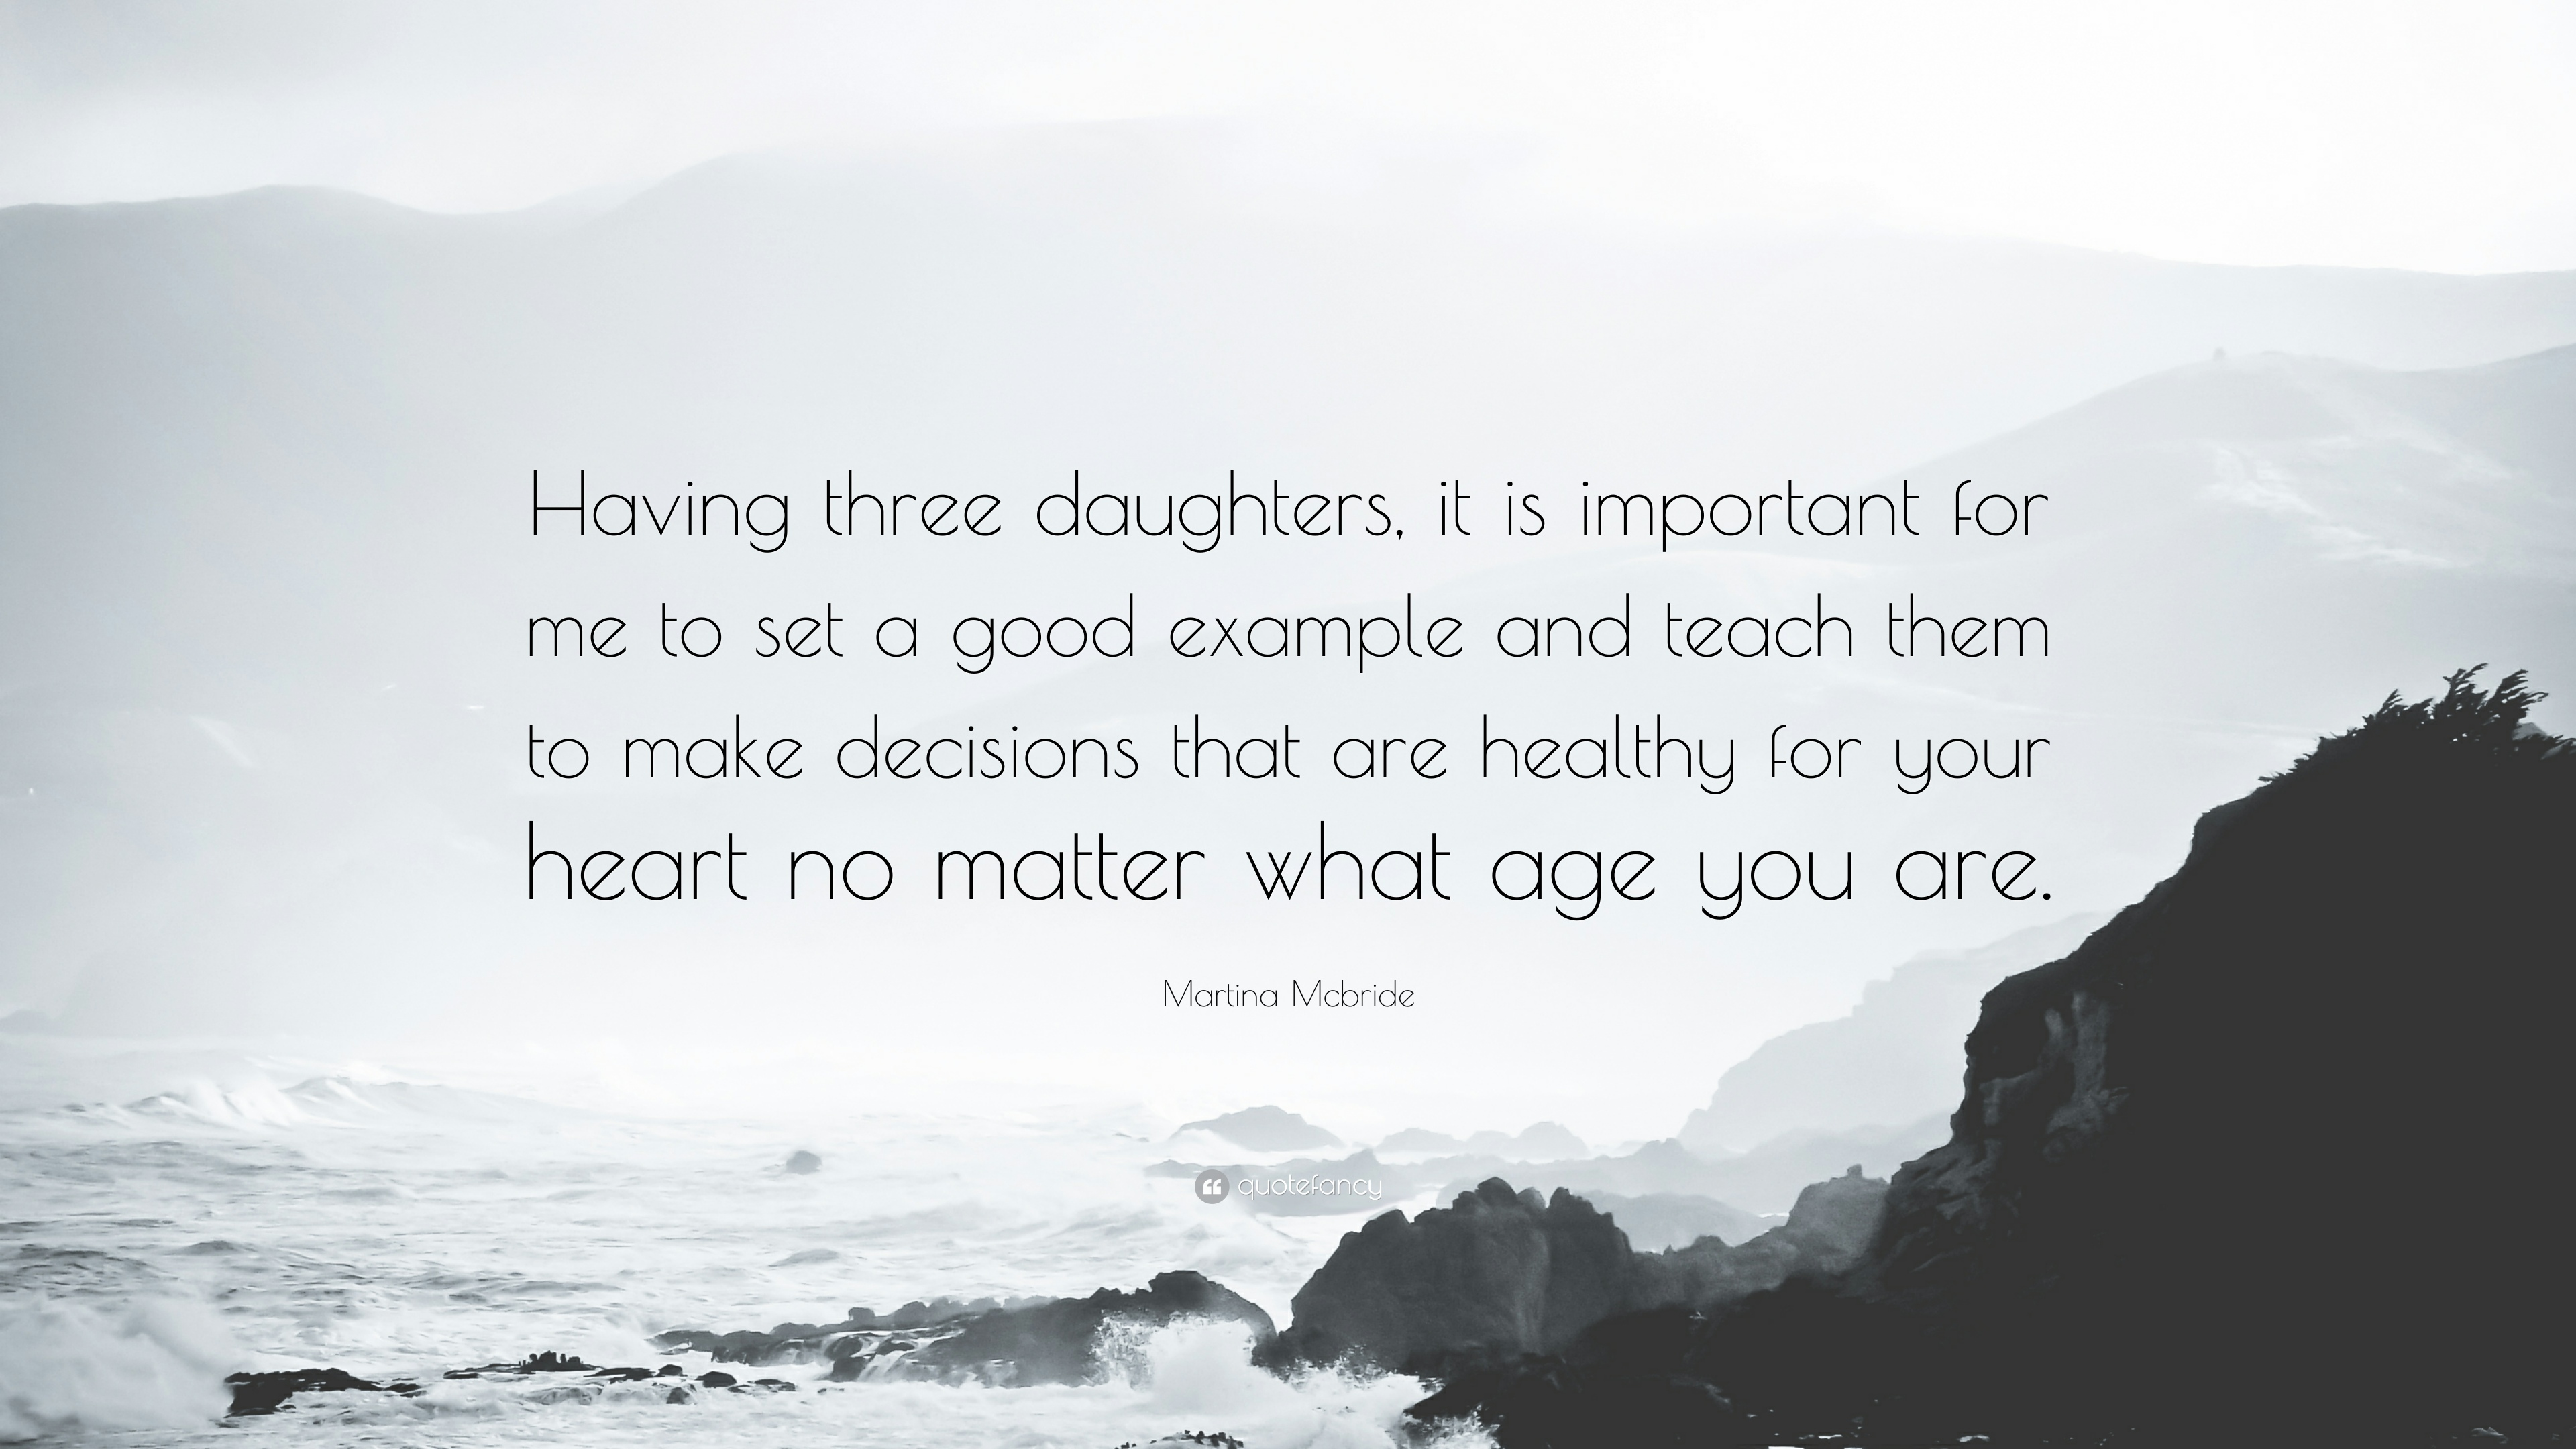 Martina Mcbride Quote Having Three Daughters It Is Important For